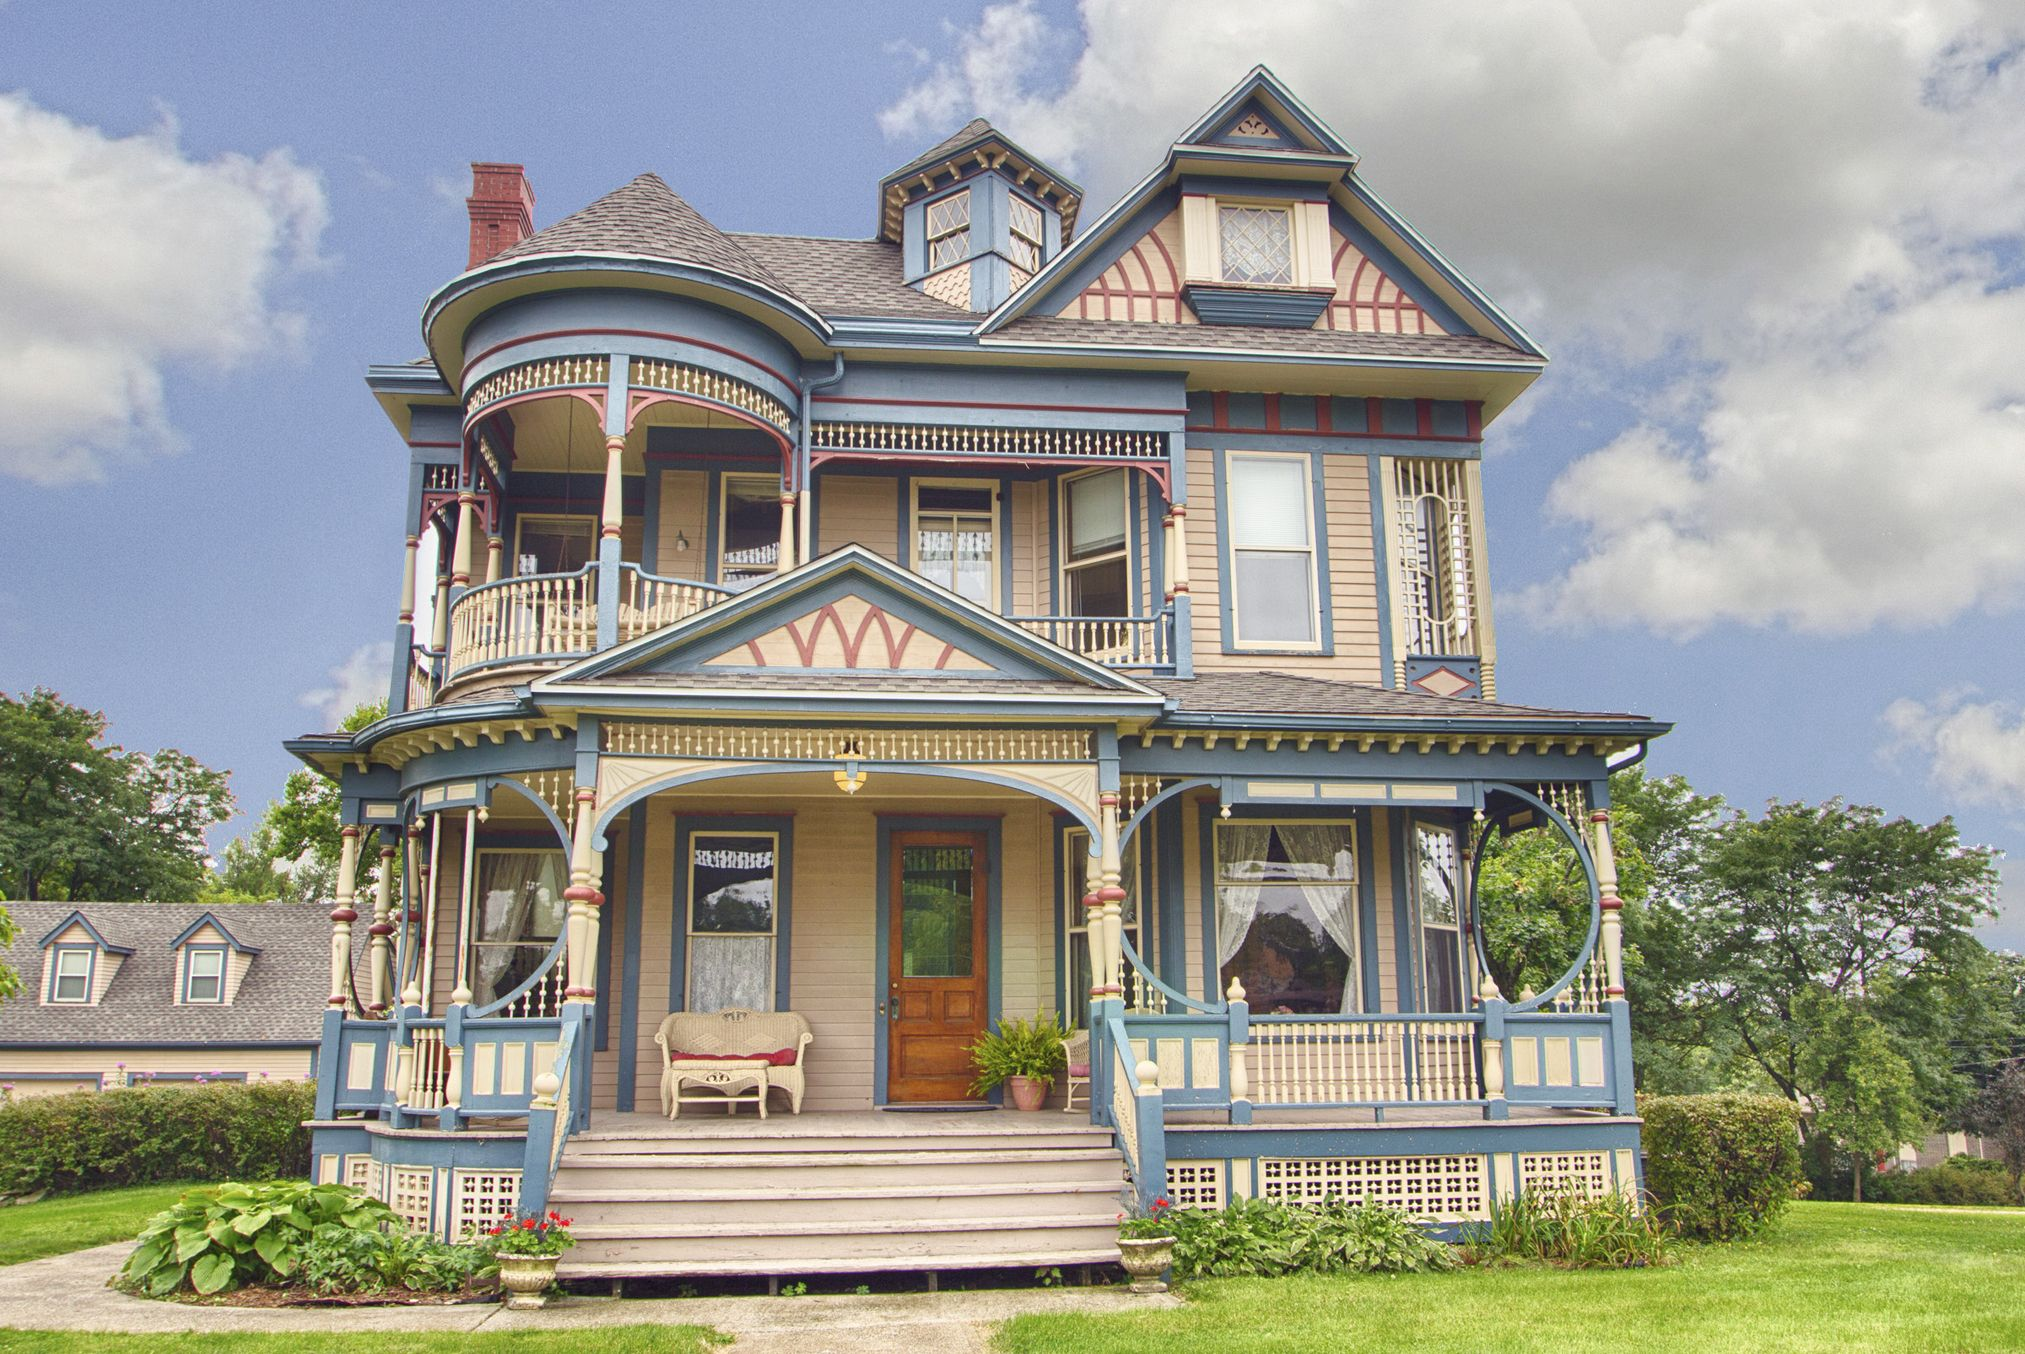 50 Historic Homes For Sale In Every State Across America Victorian Homes Exterior Victorian Homes Historic Homes